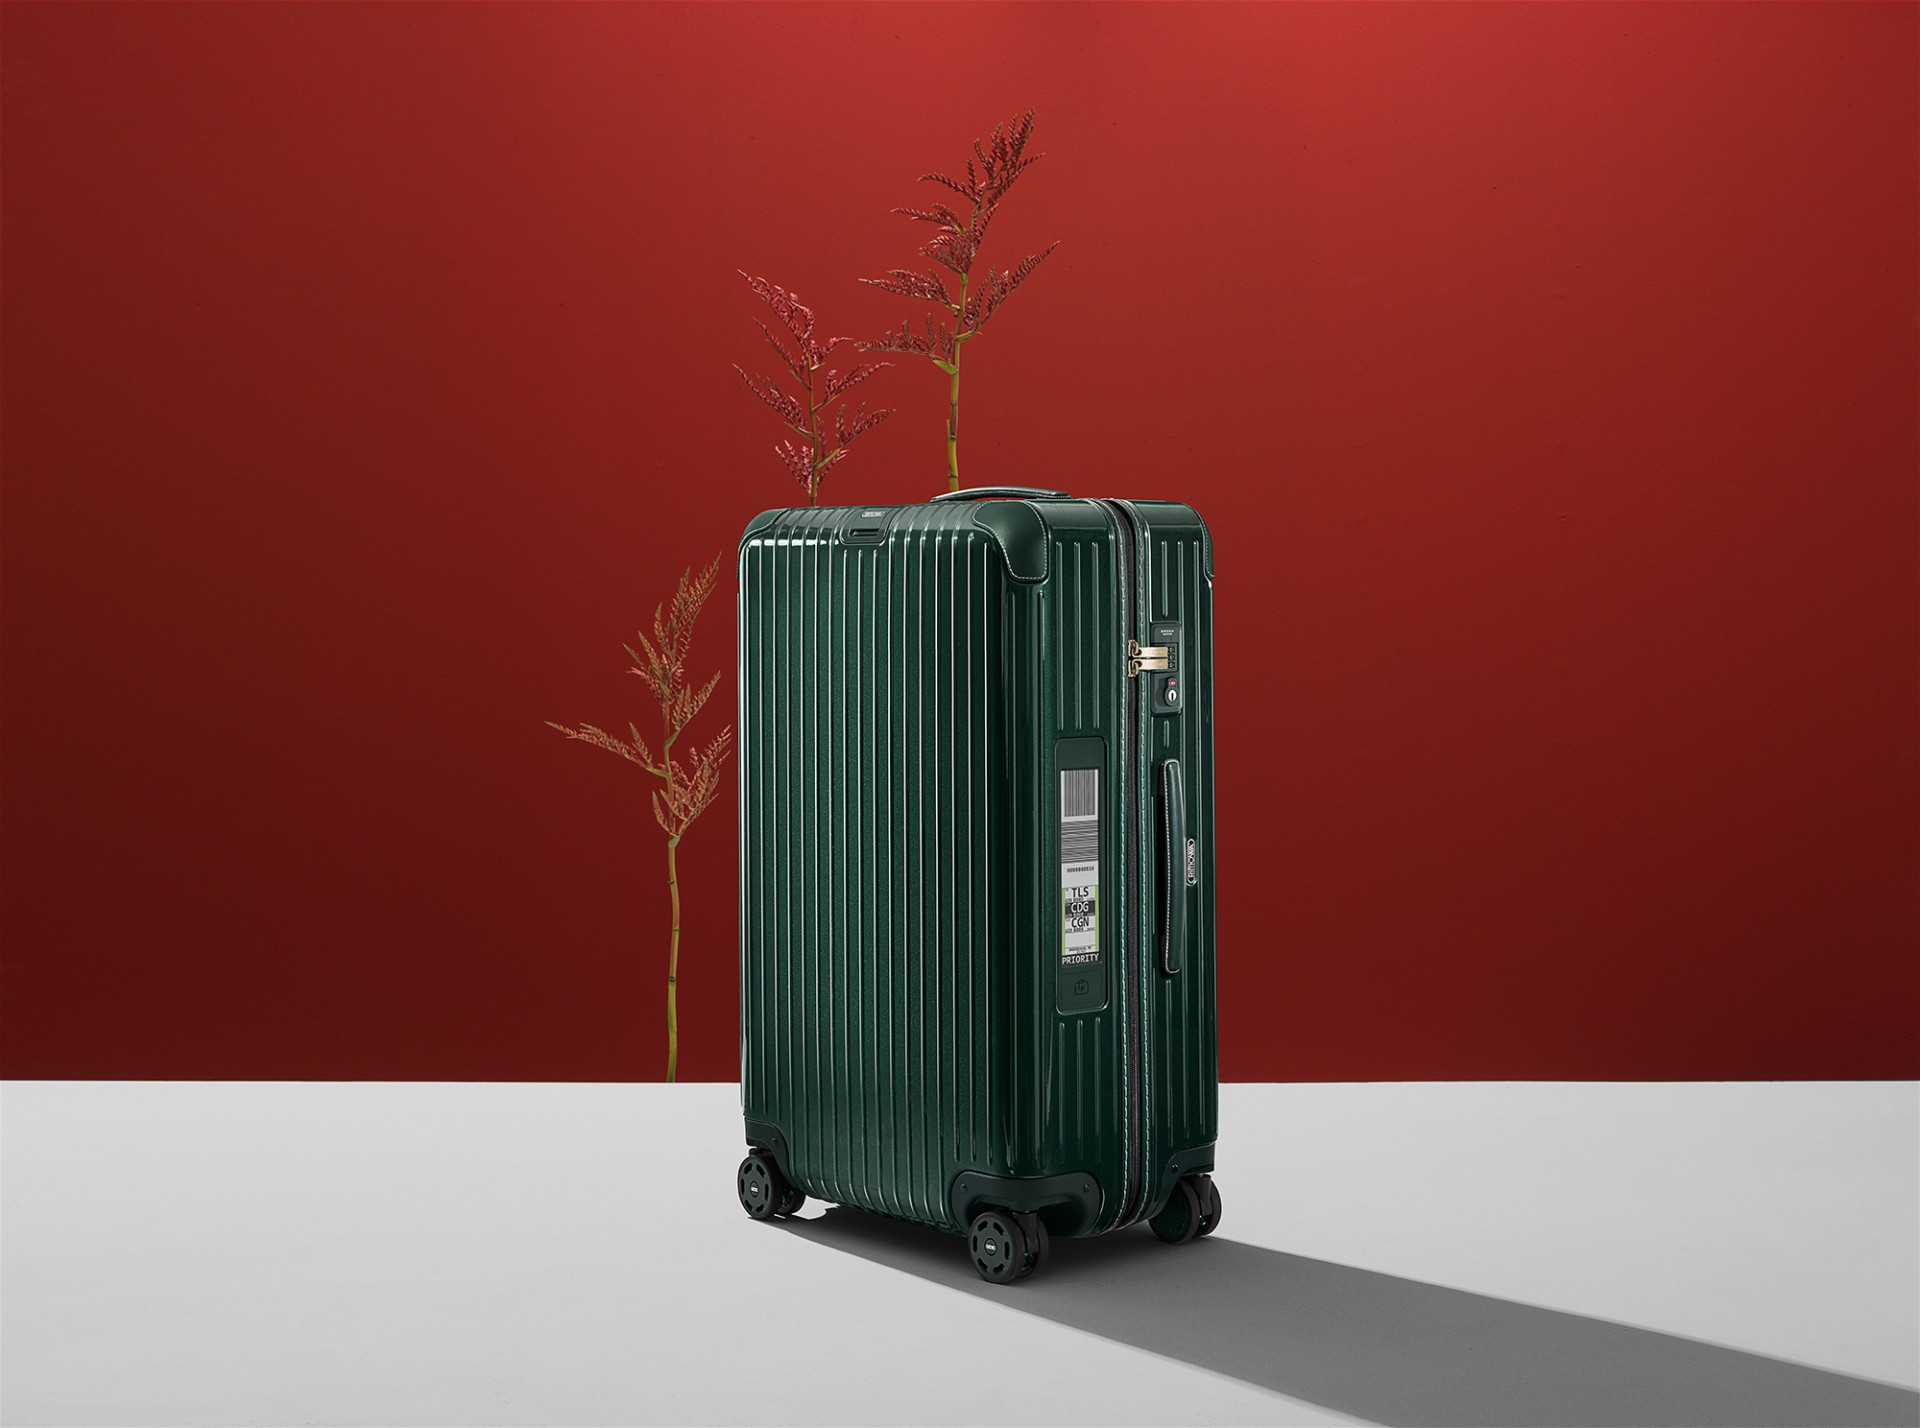 Rimowa Campaign Dirk Weyer Photography + Motion